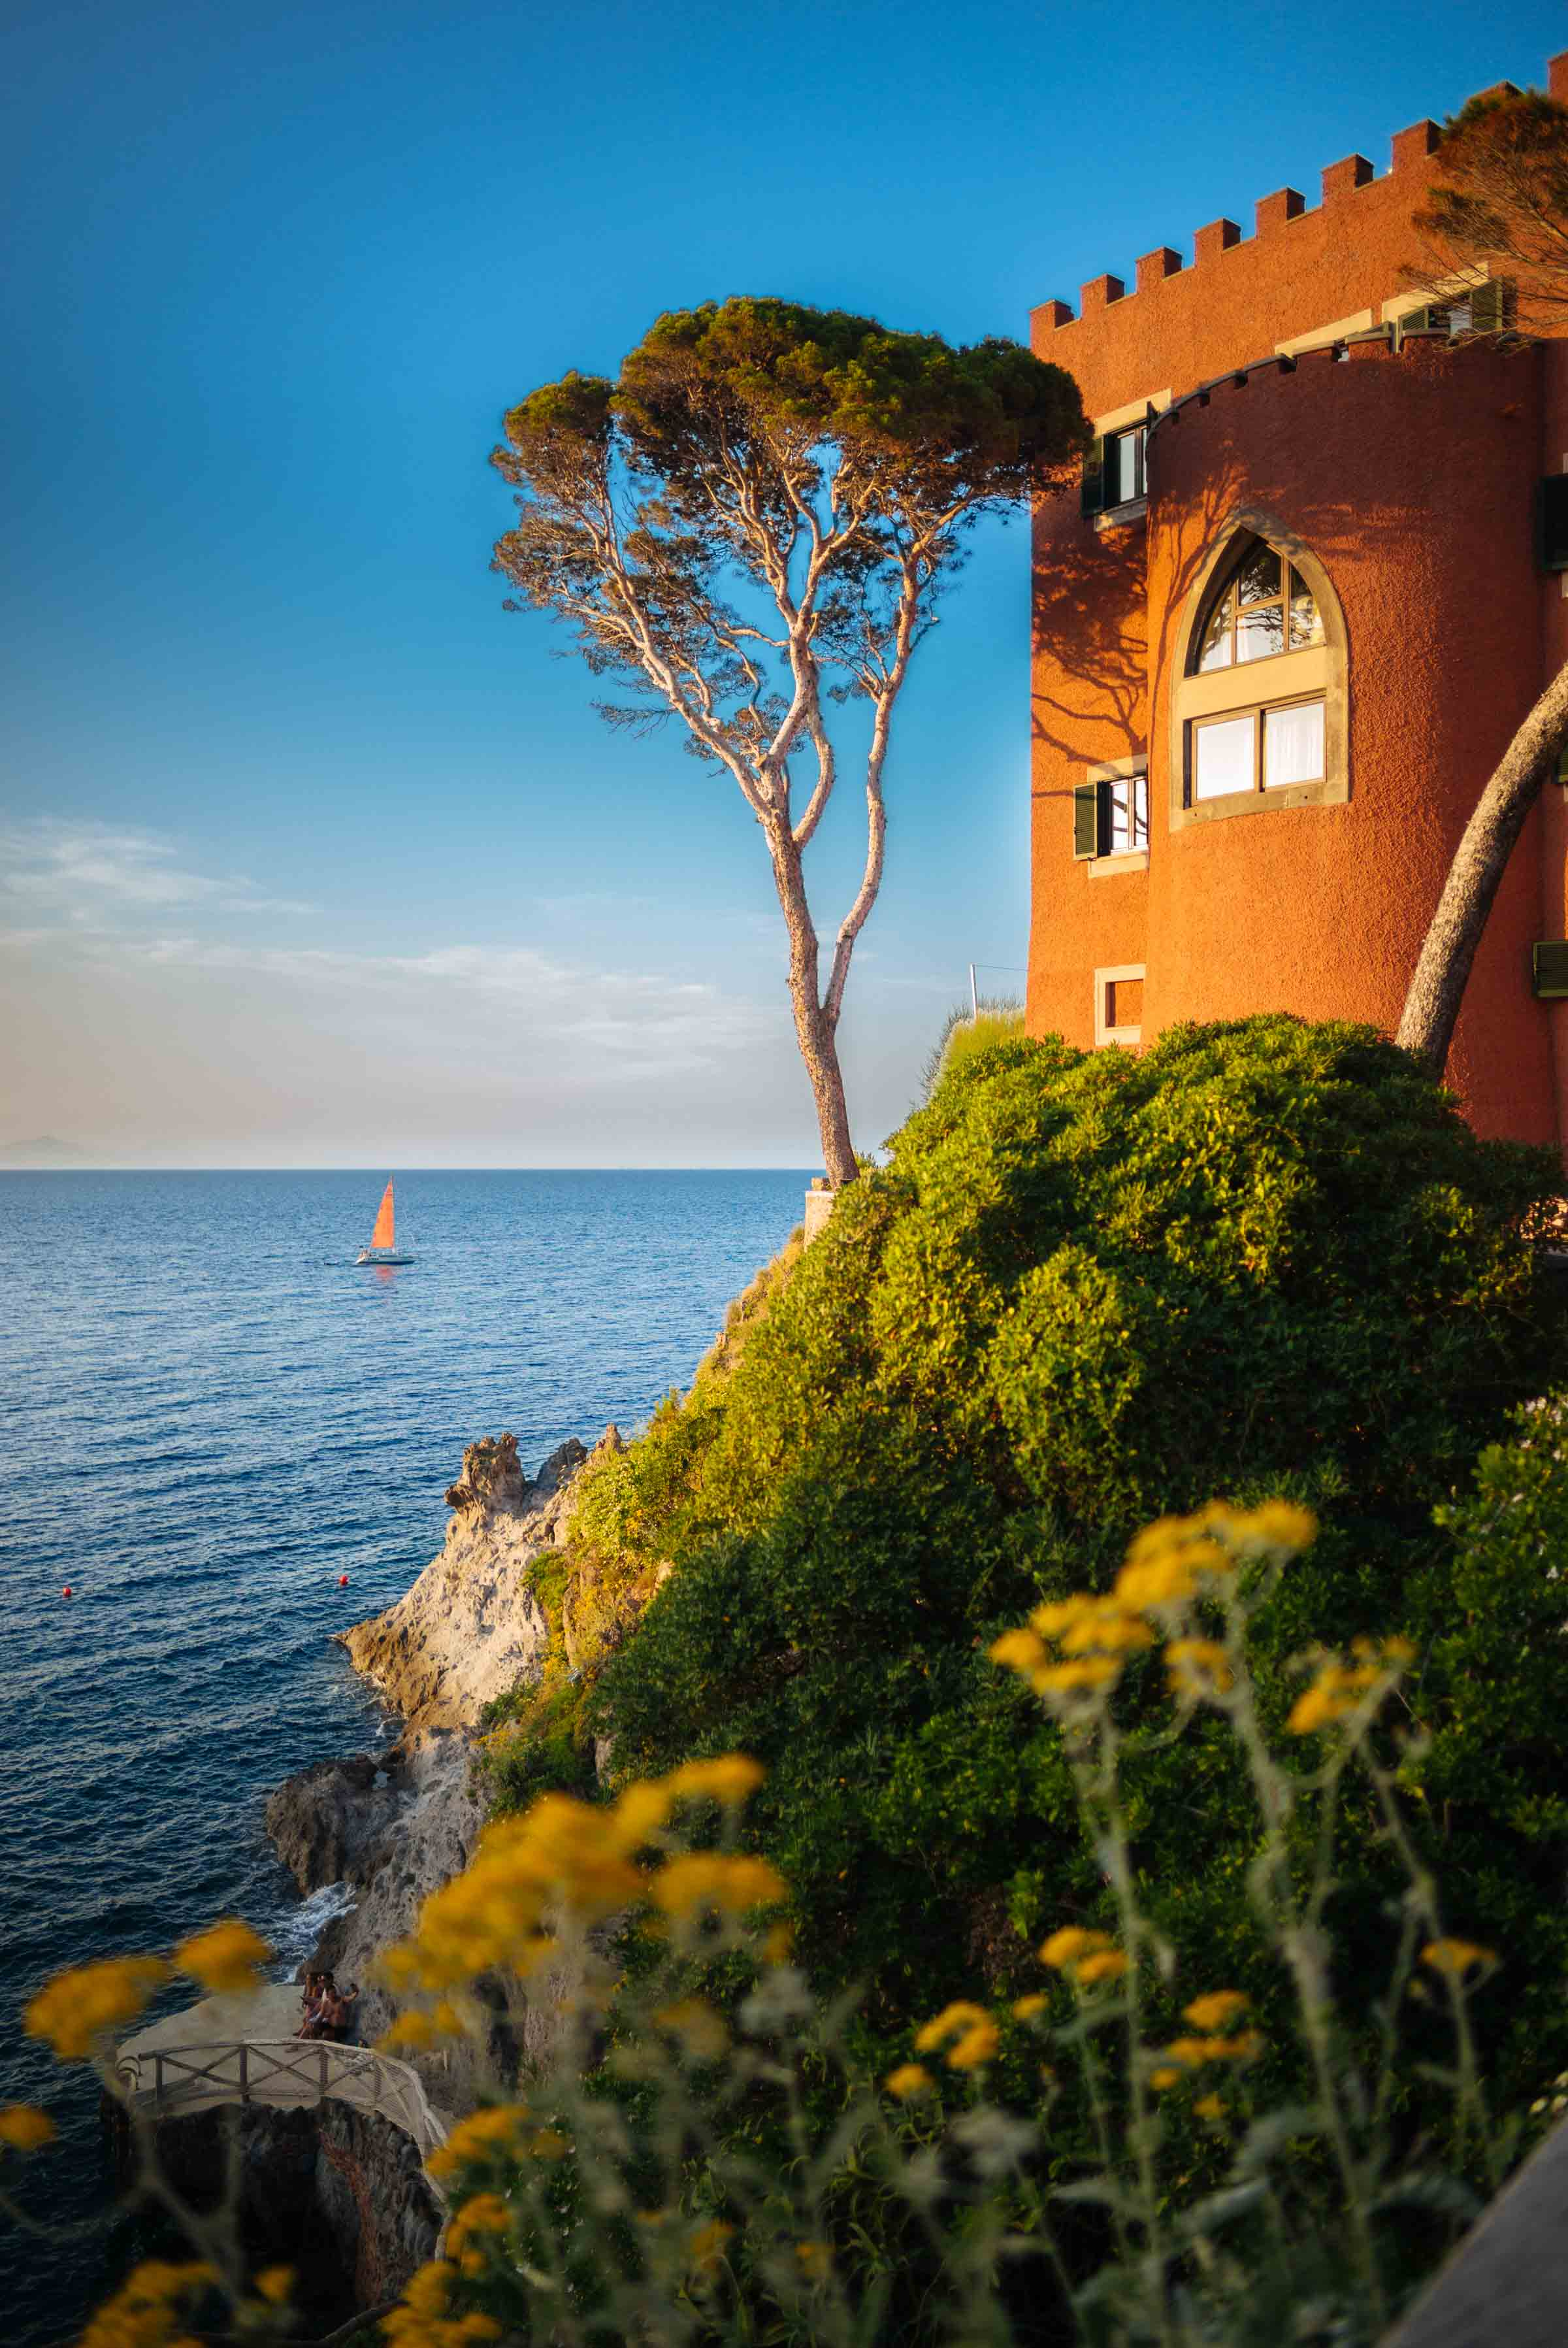 Visit the Mezzatorre Hotel and Thermal Spa in Ischia with a salt water pool, private cove, and ancient watchtower where you can watch the sunset and beautiful boats sail by. Ischia, Italy - Photo by Sarah Stanfield and The Taste SF